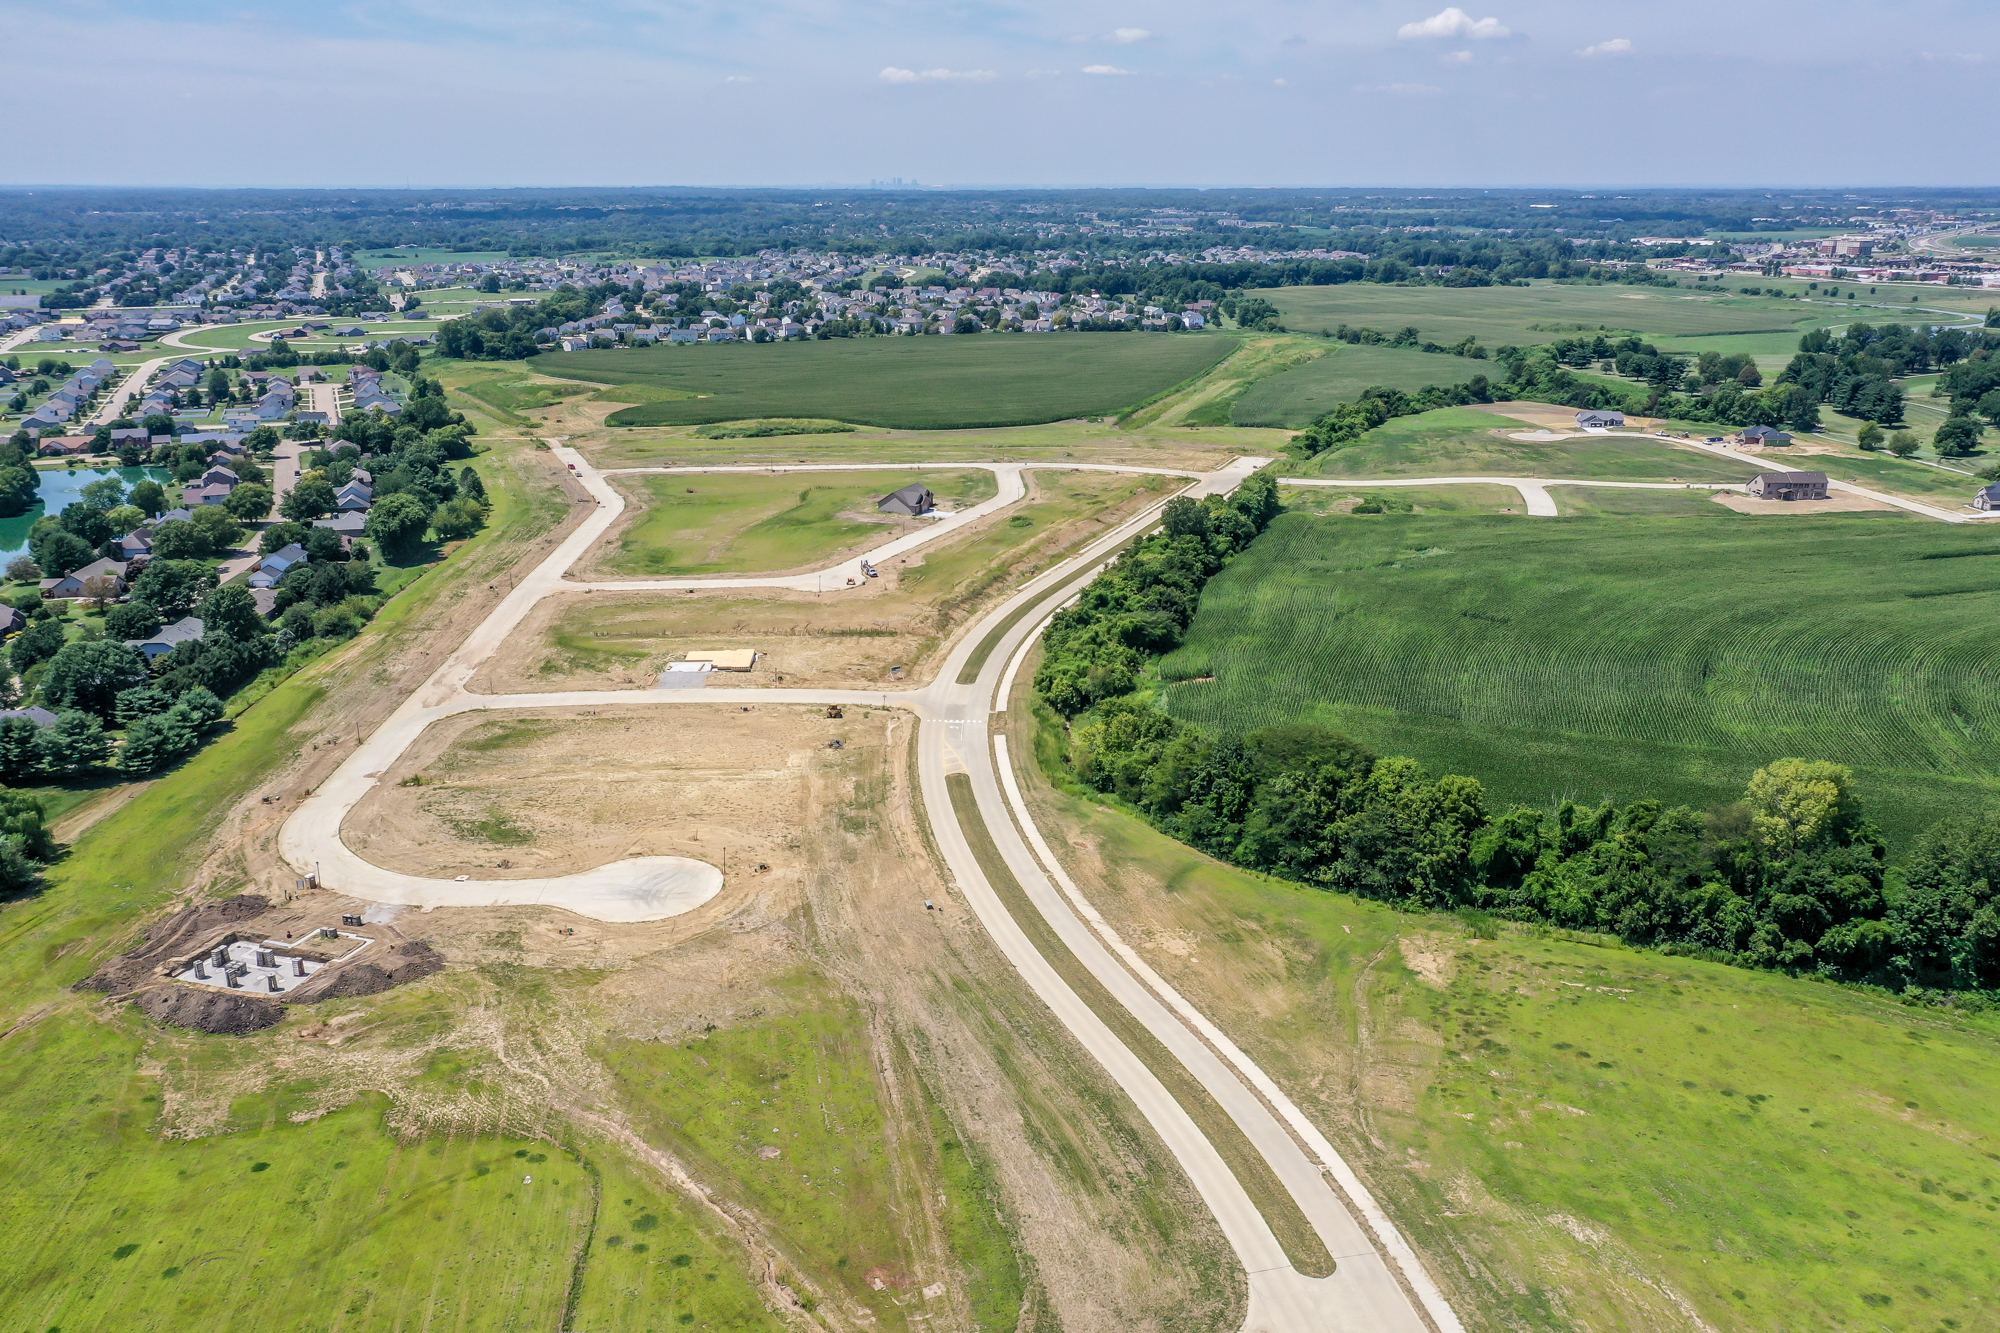 New_Construction_Homes_For_Sale_Shiloh_Illinois_Near_Scott_AFB-36.jpg